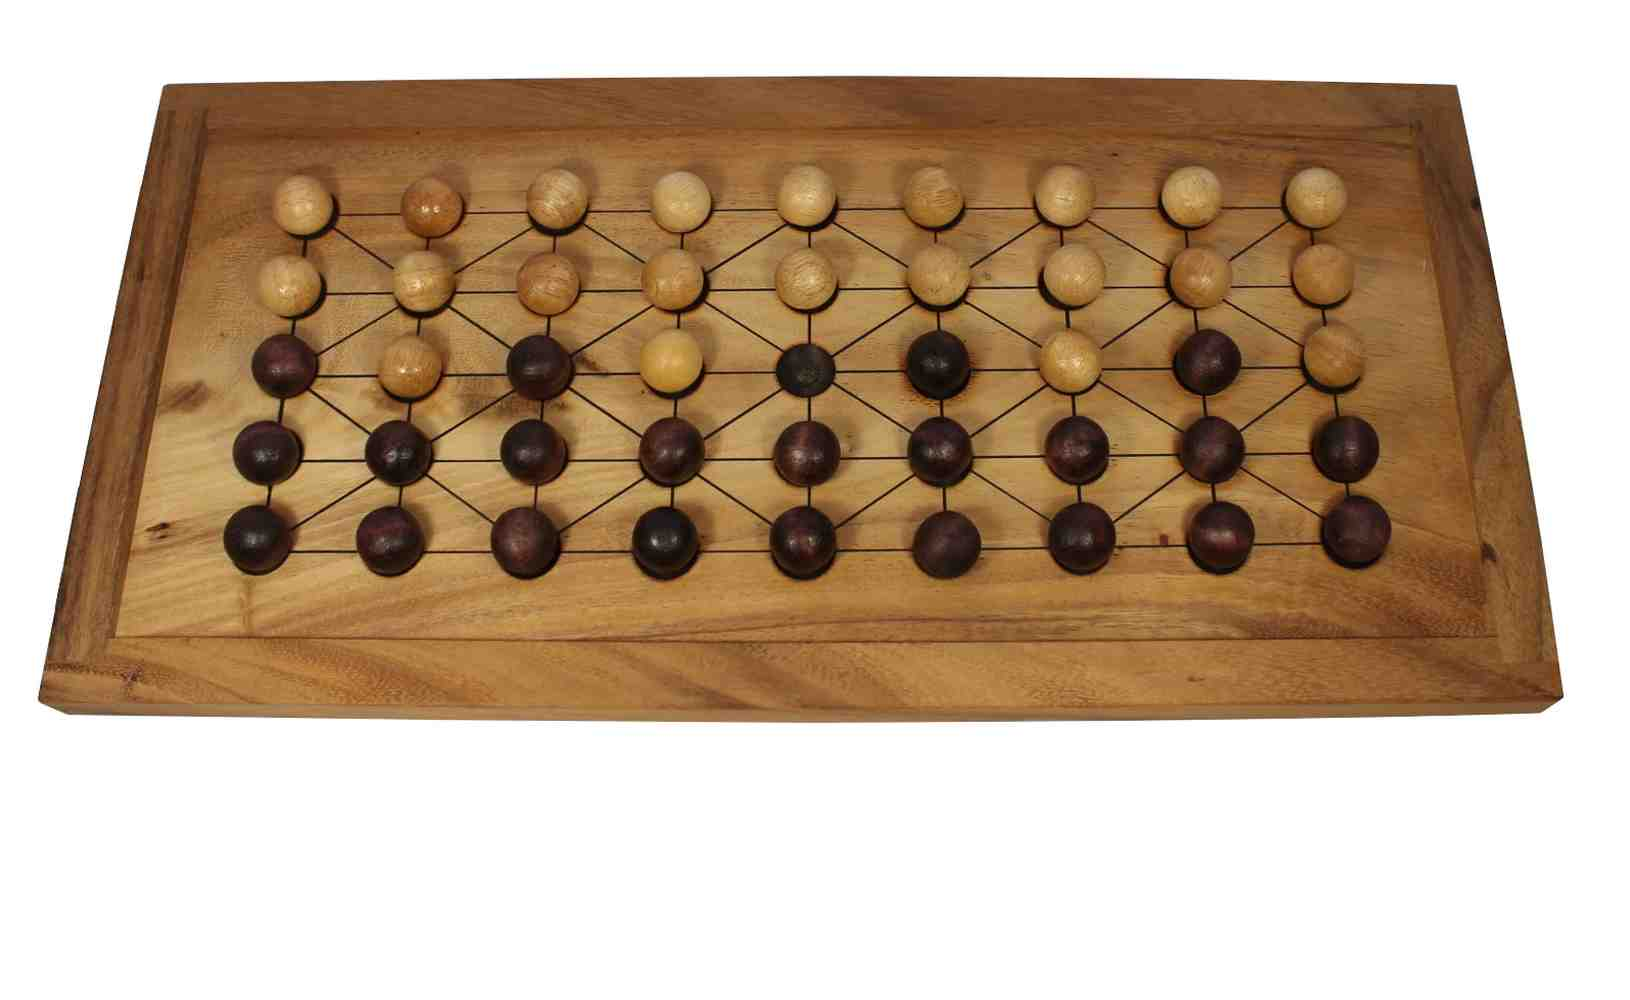 Fanorona Or Malagasy Checkers Jbd Wooden Board Games